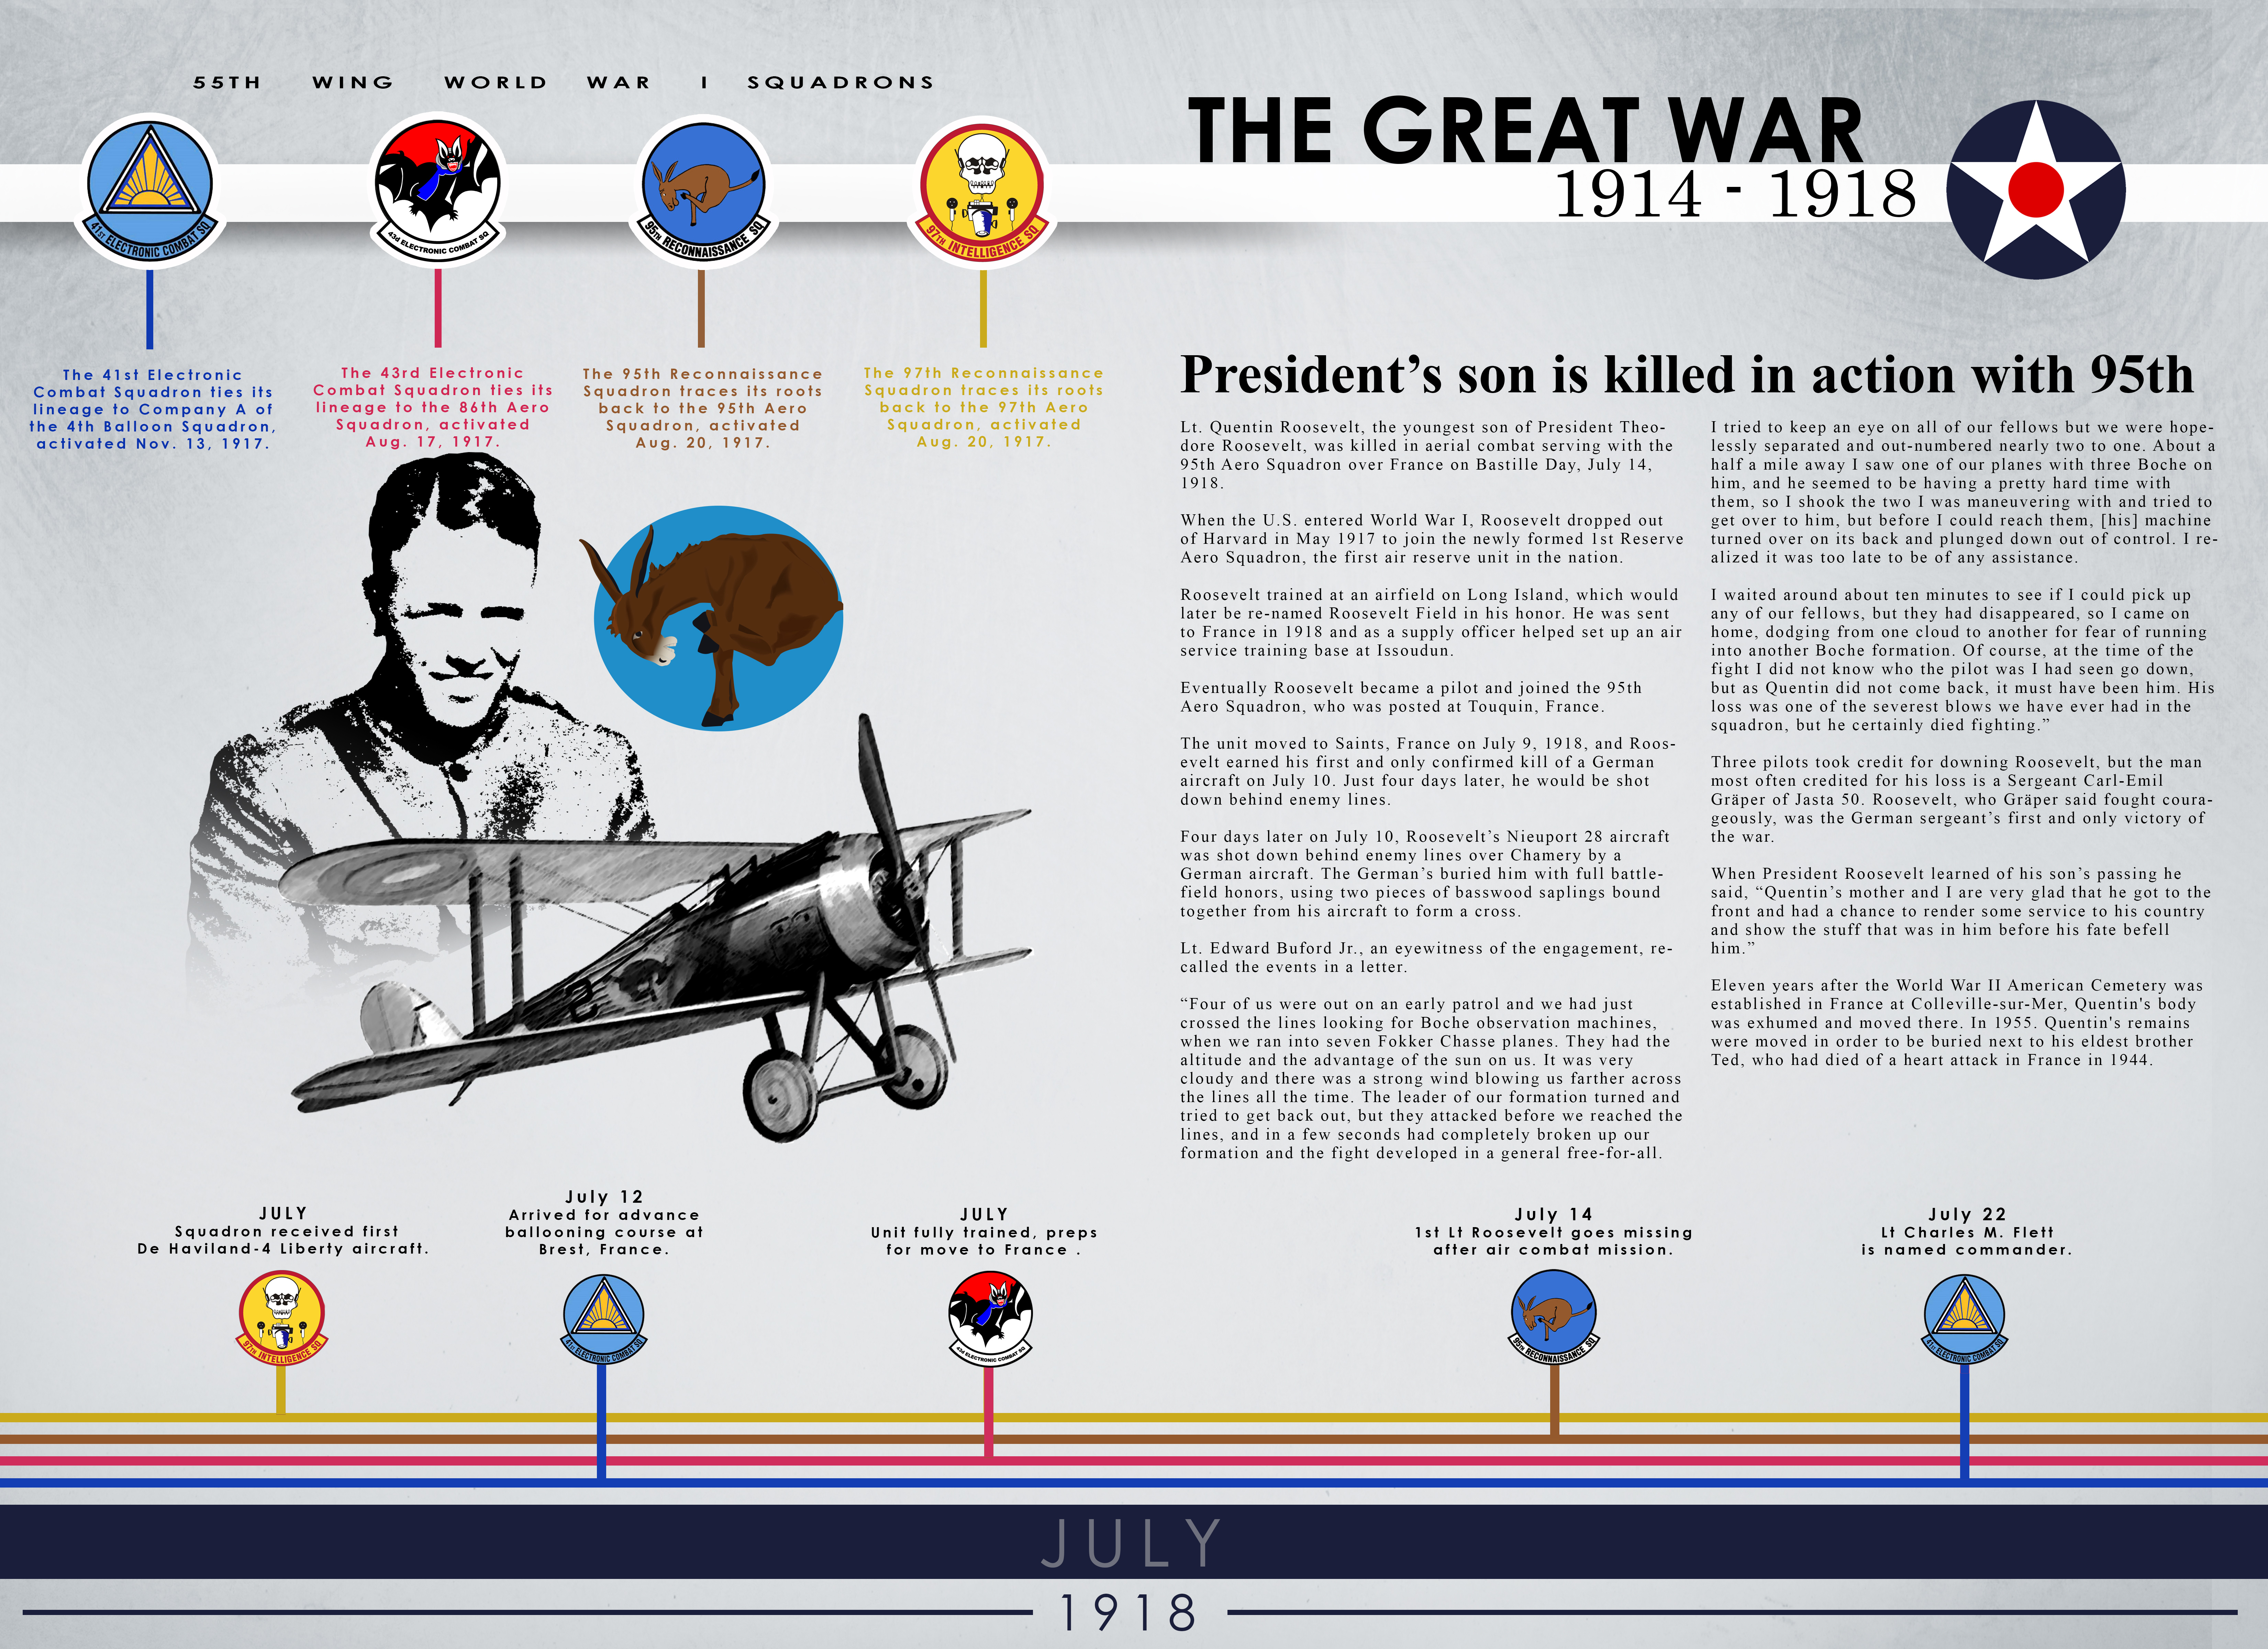 Image depicting the contributions of the 55th Wing during WW1. This photo is about the 95th Aero Squadron and how President Theodore Roosevelt's son was Killed in action while serving with them.